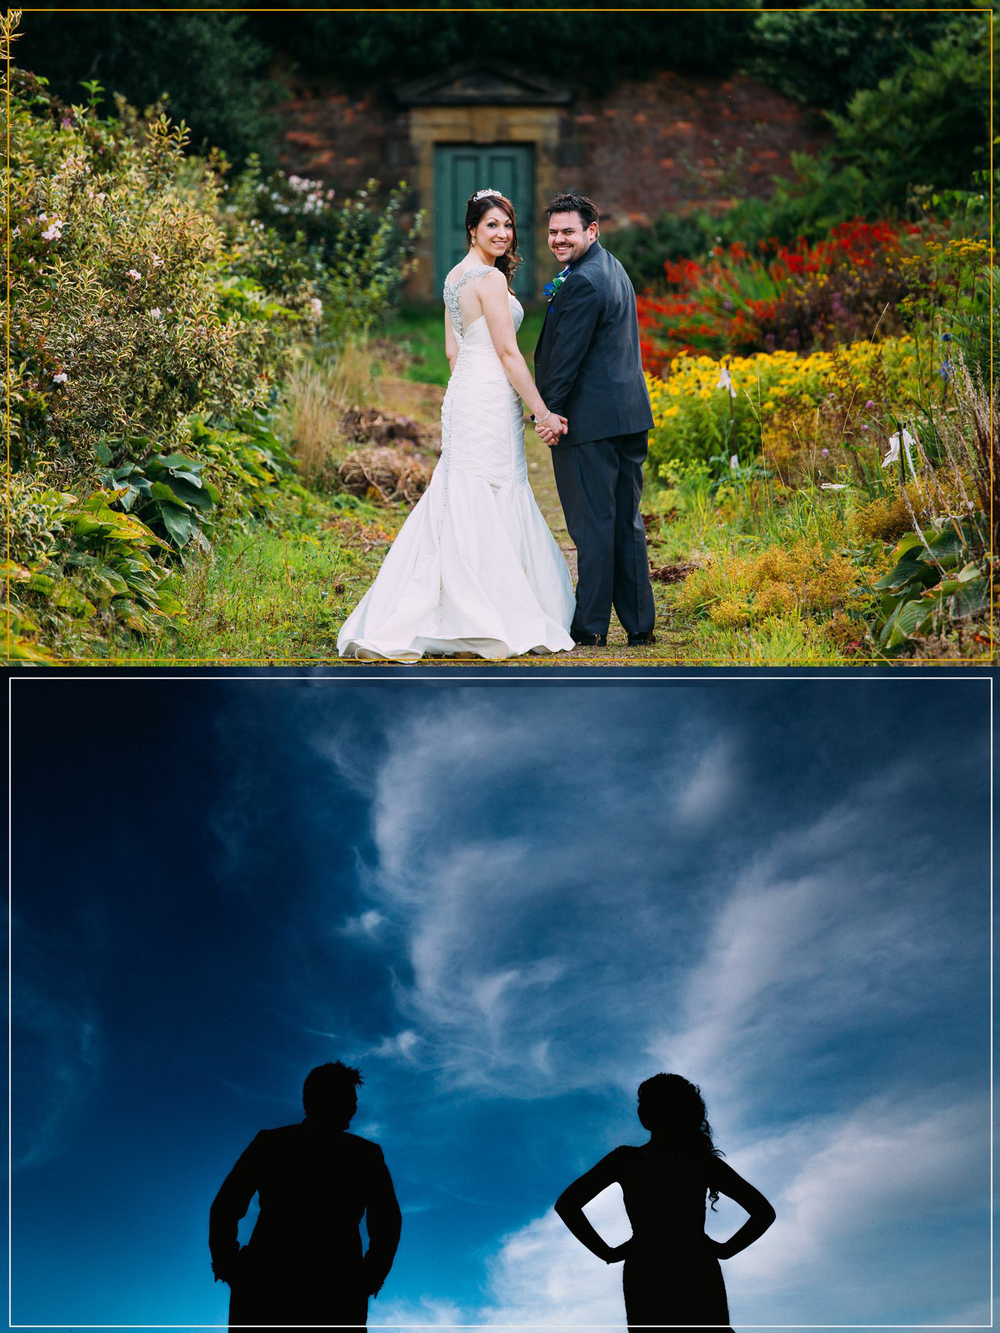 wedding photographer sheffield.jpg